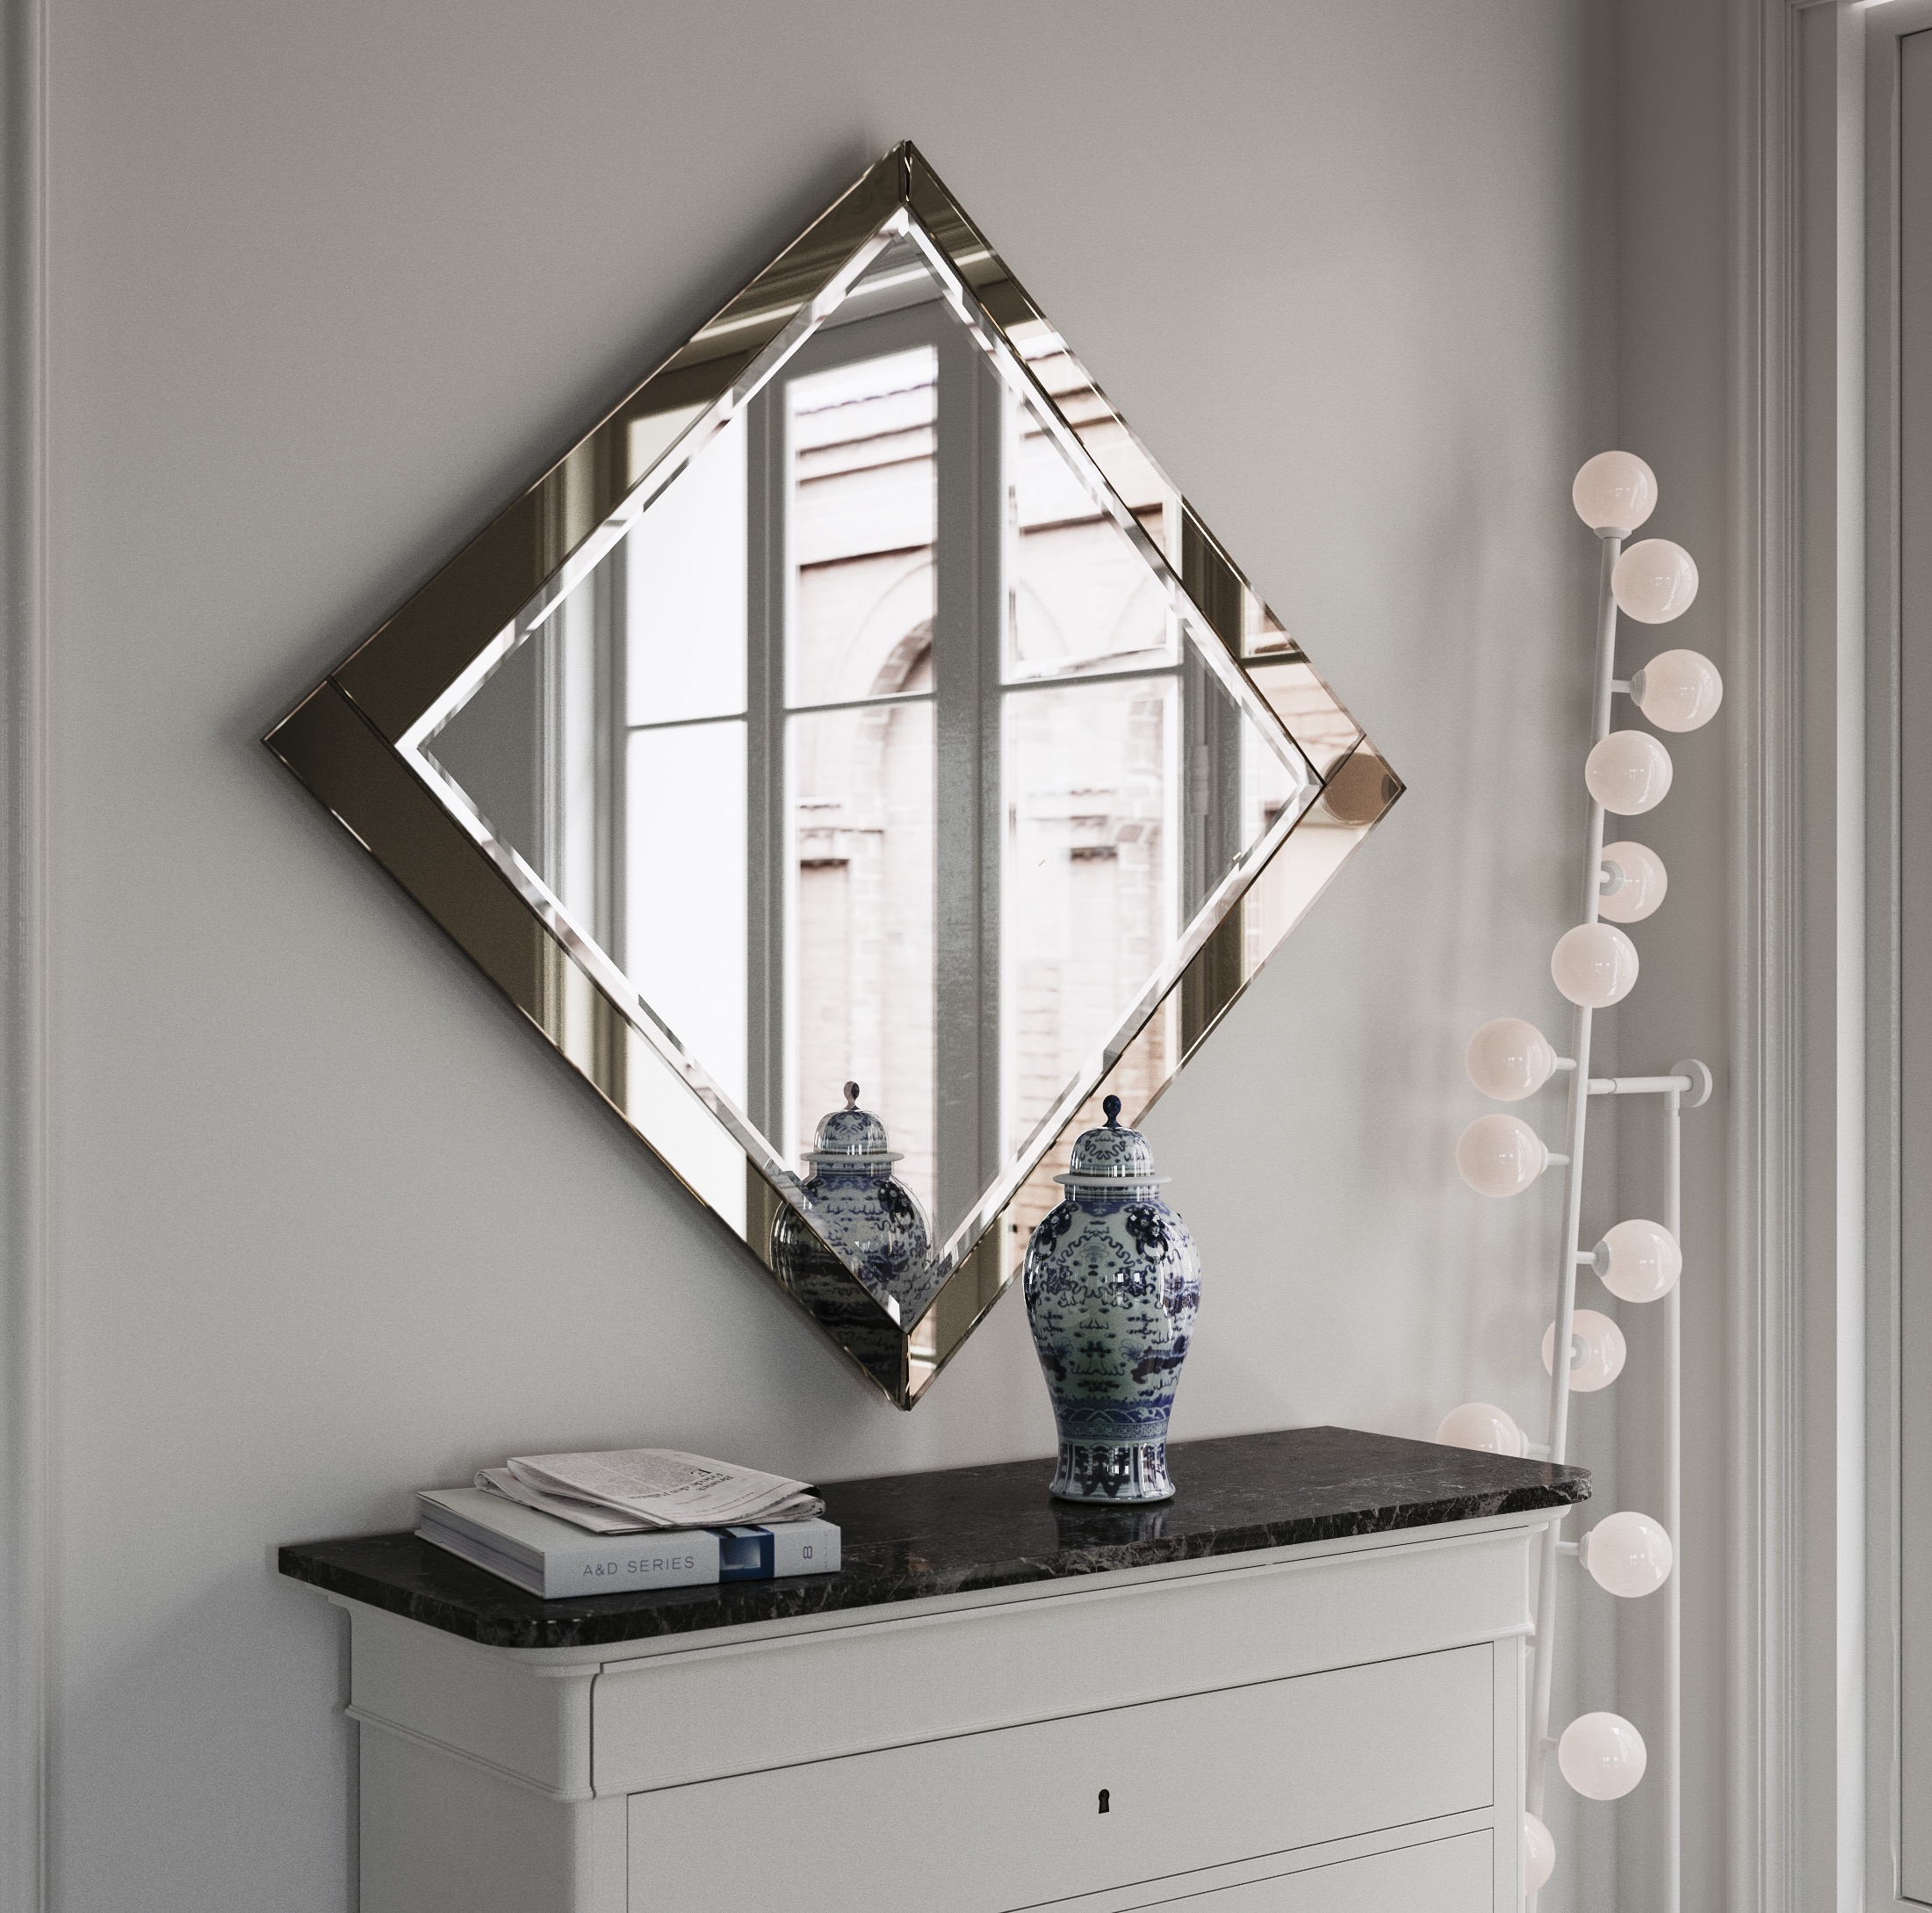 Mirror photographed from the side